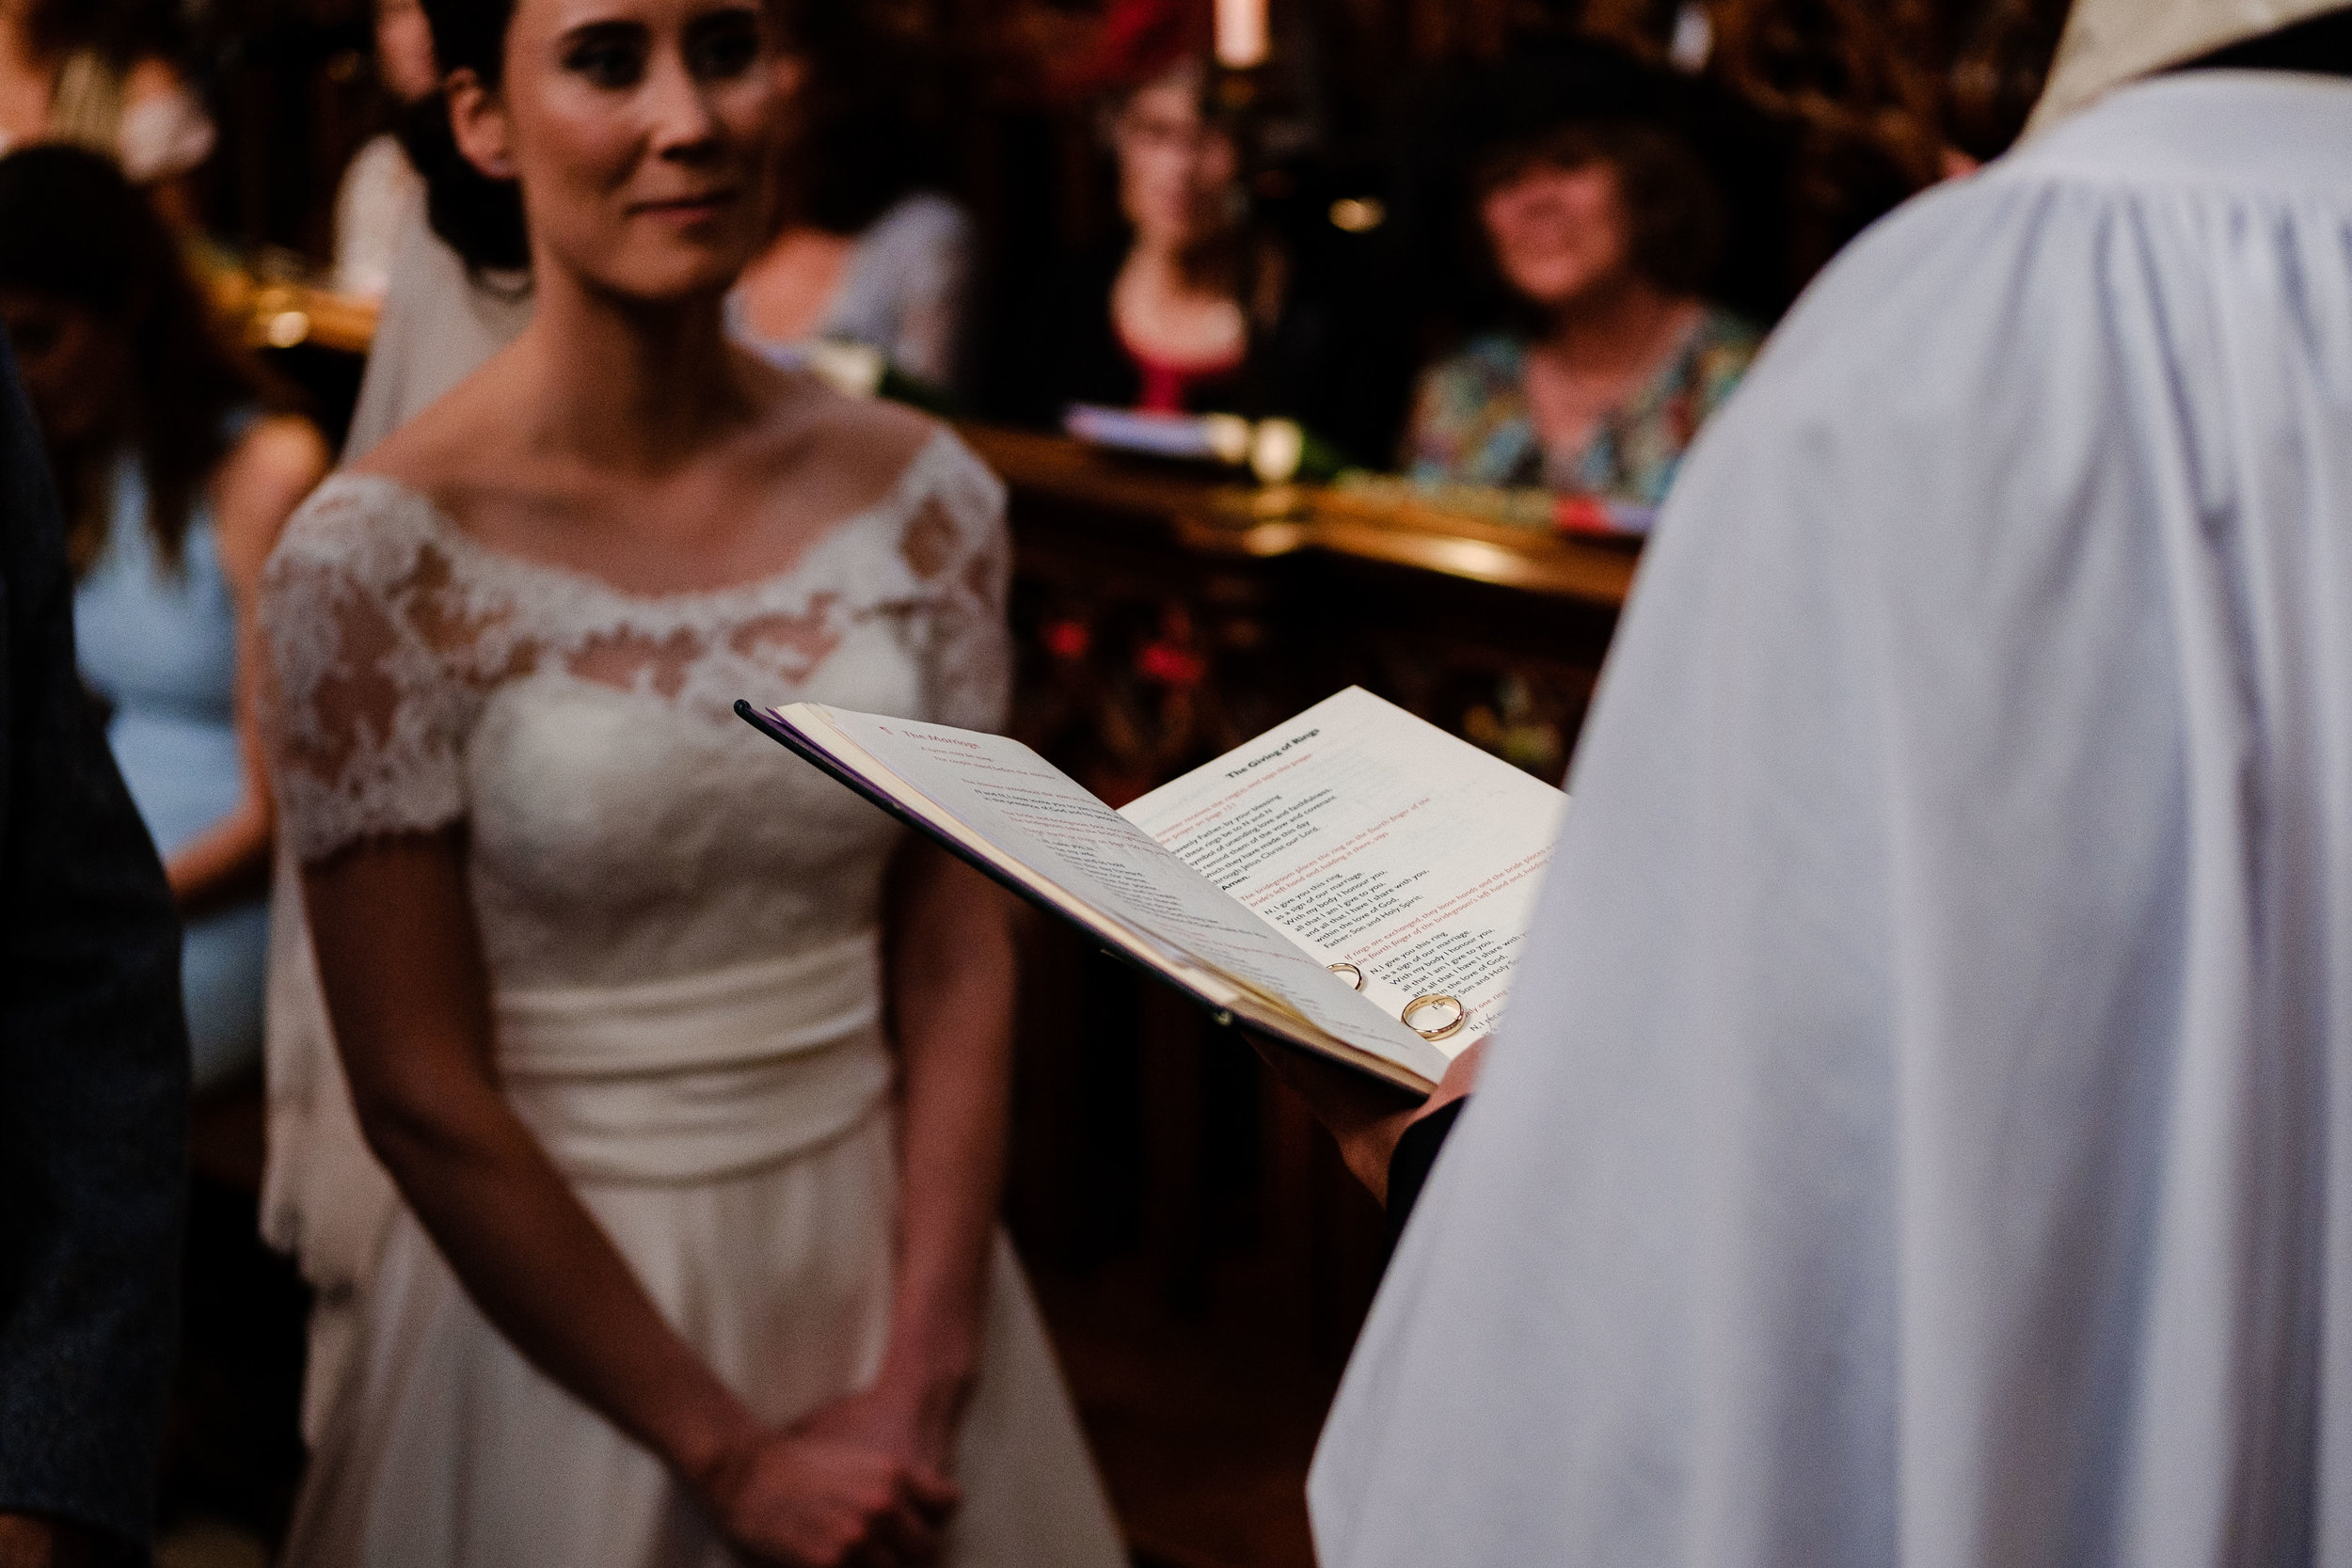 magdalen college oxford wedding photography (158).jpg